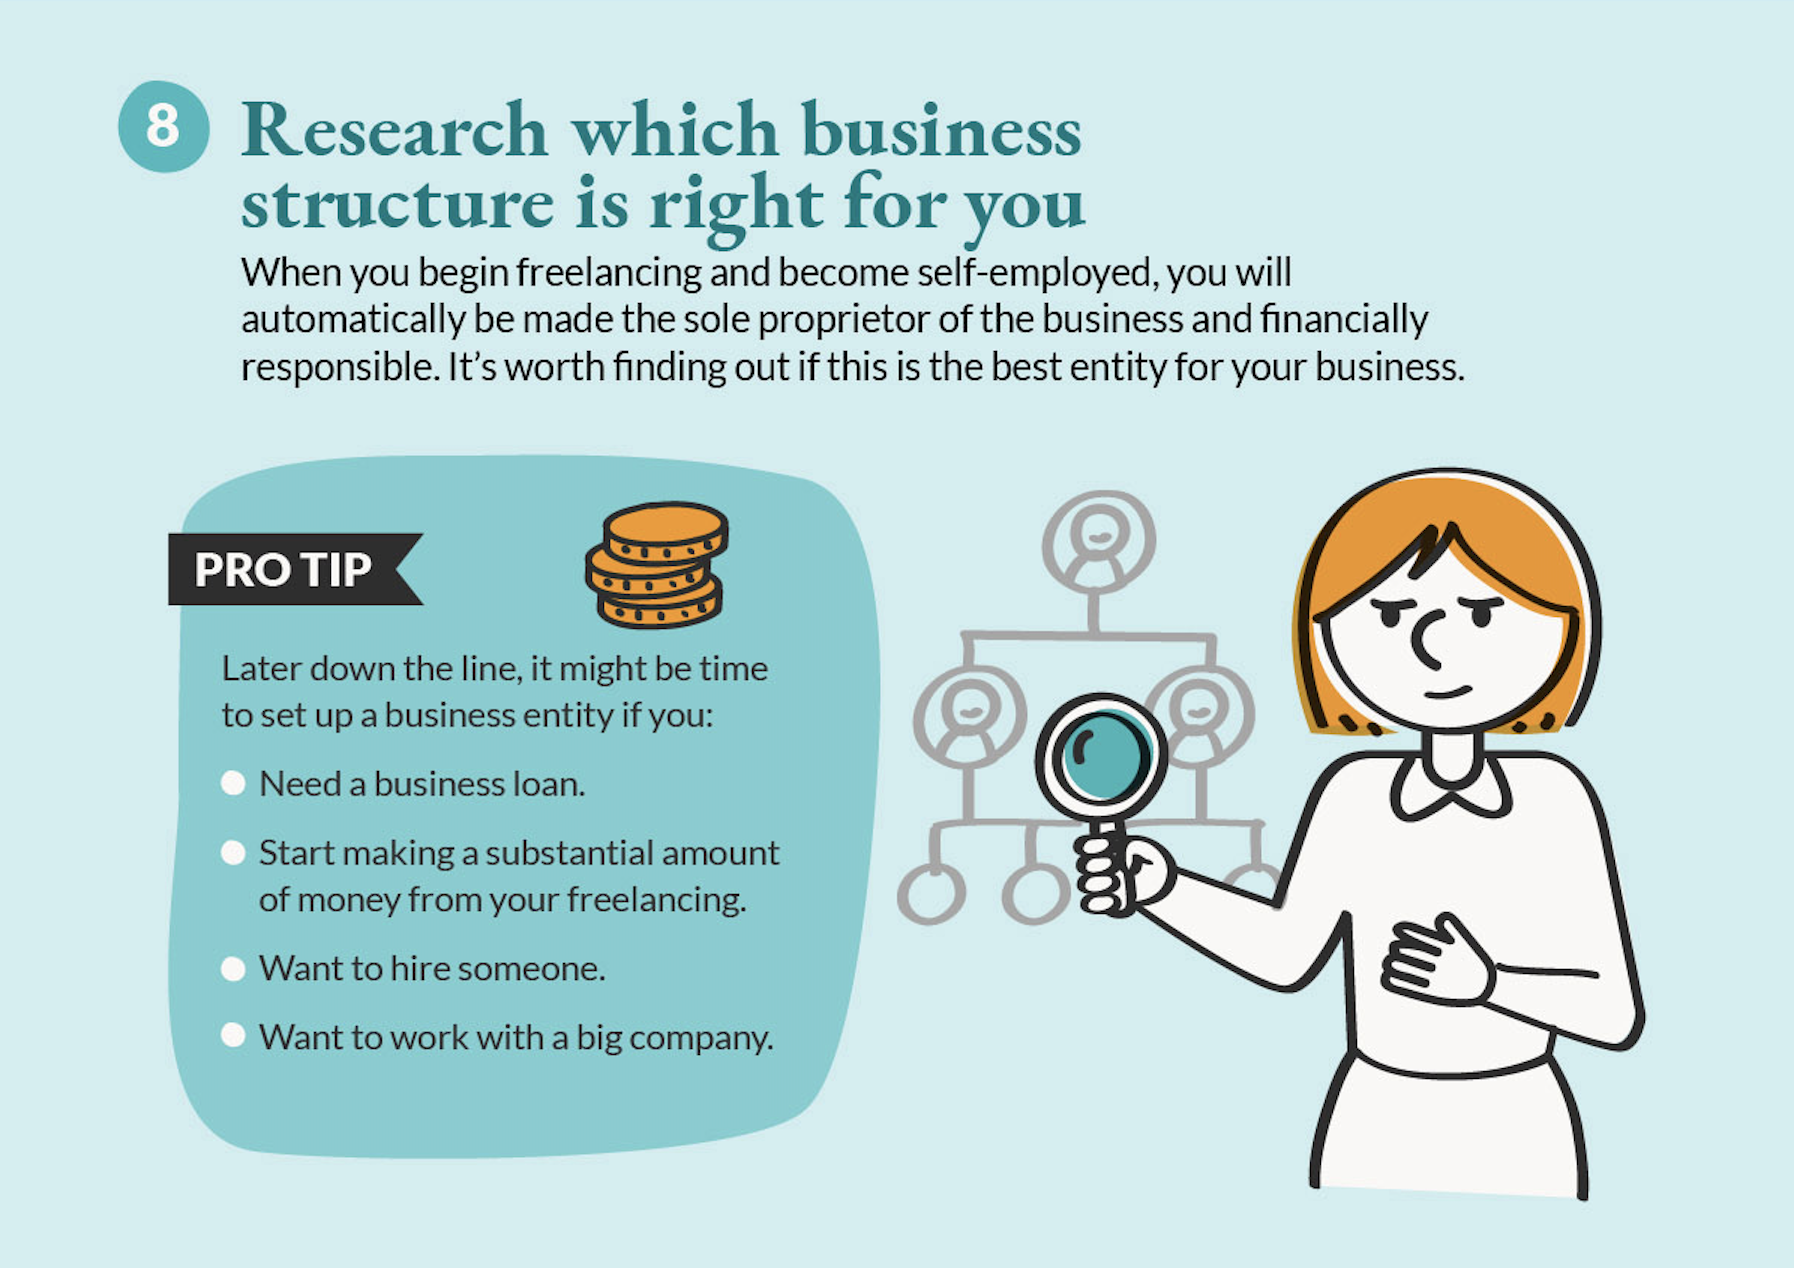 research your business structure